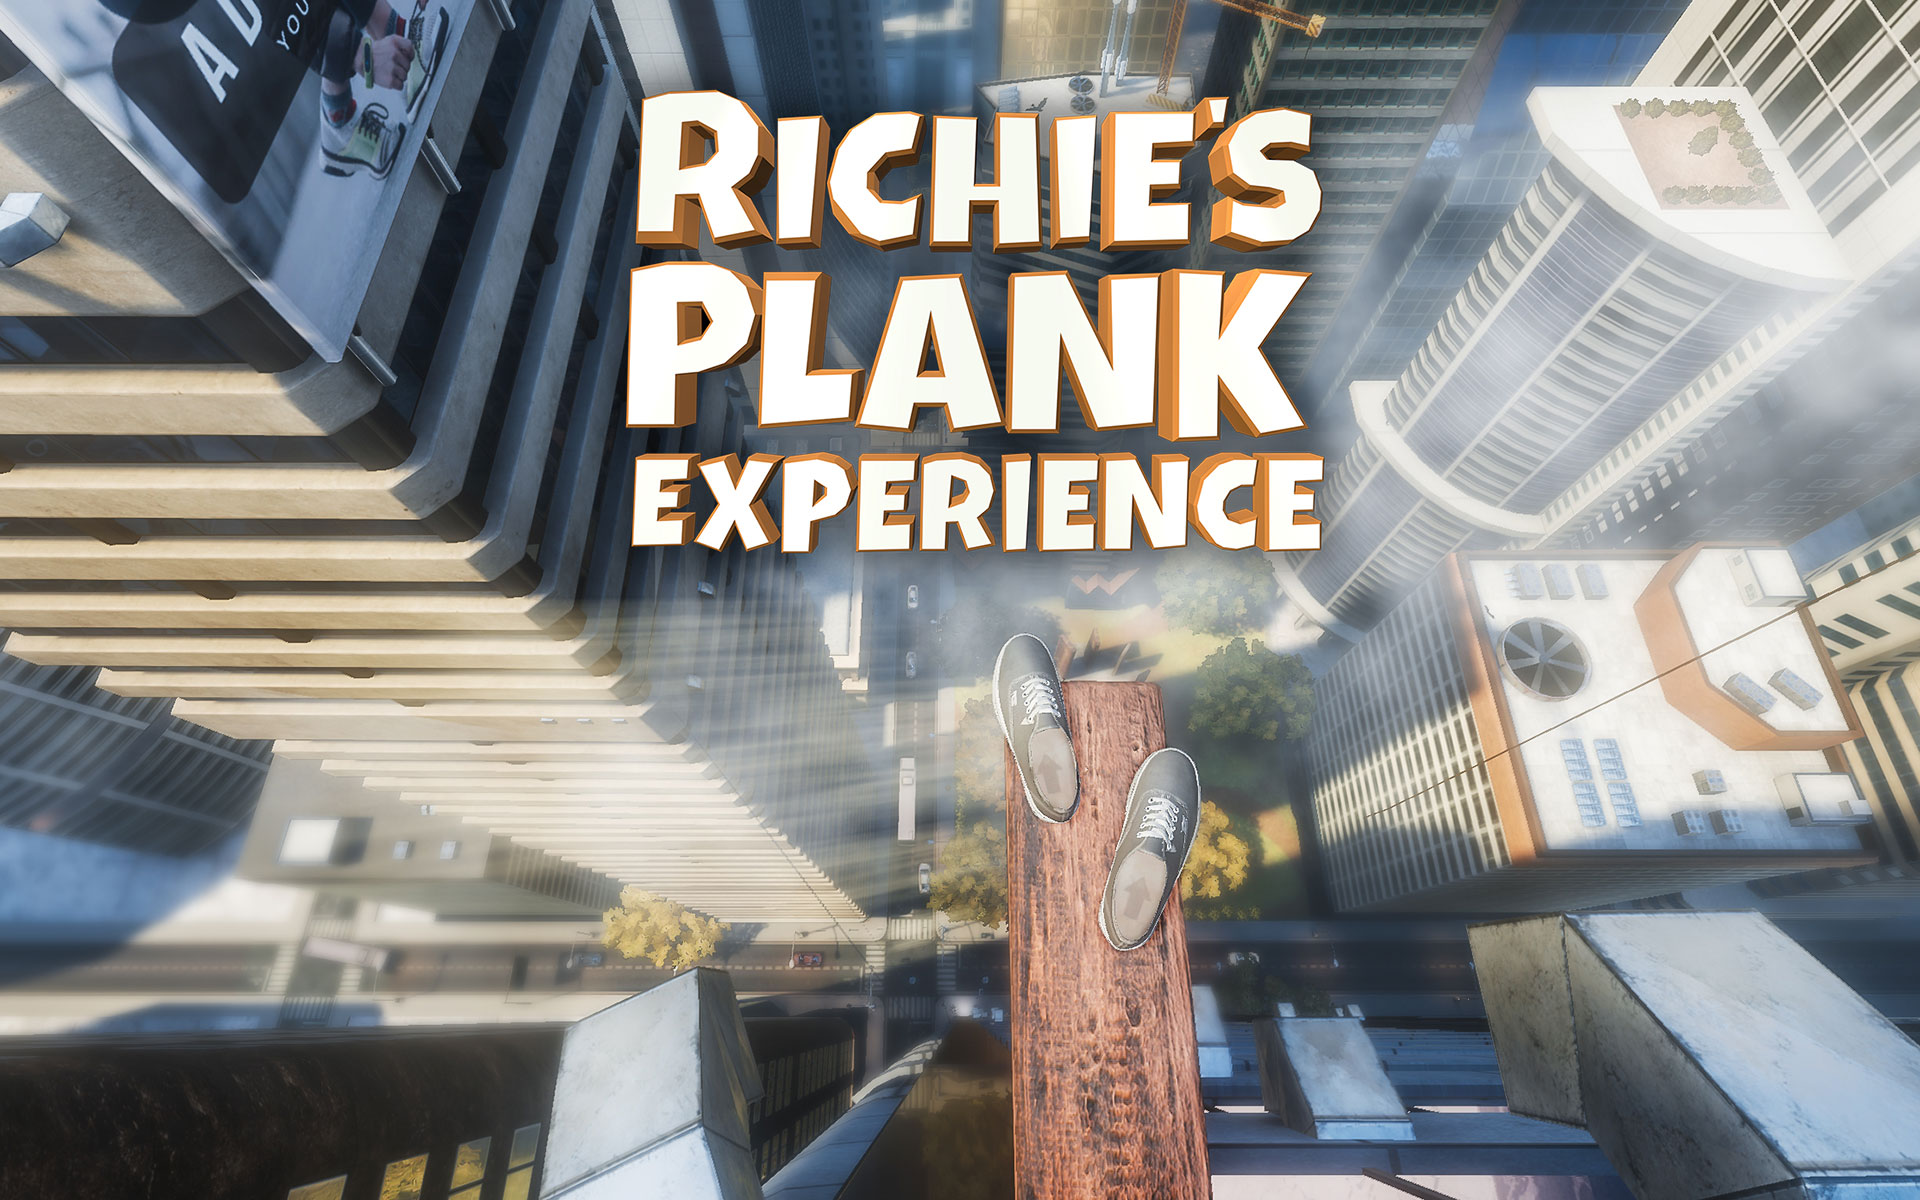 Riches Plank Oaza VR